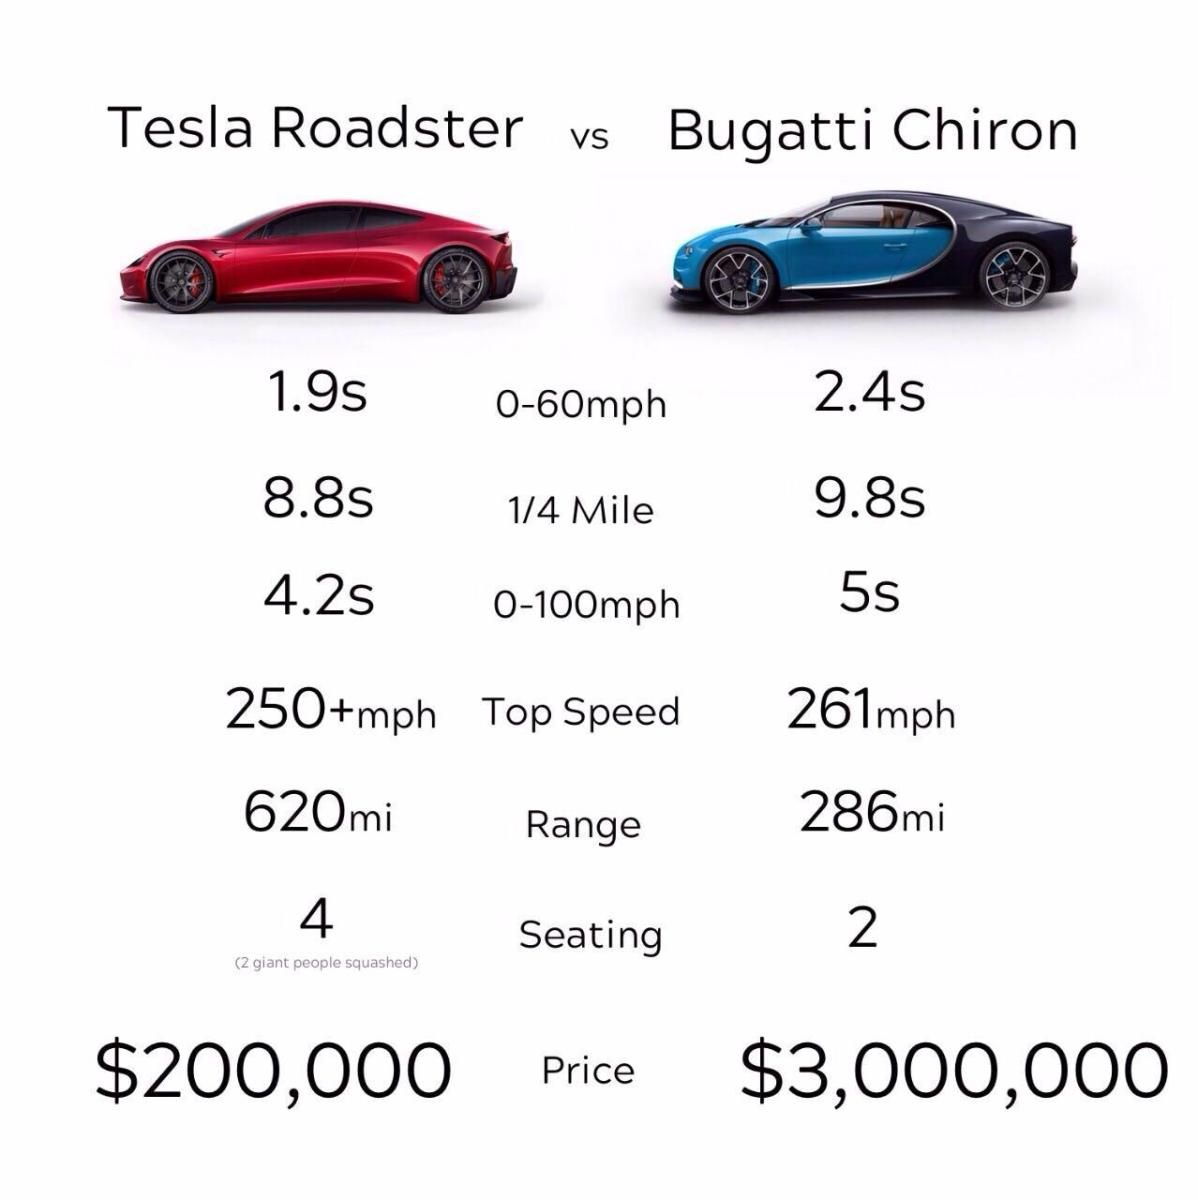 Comparing A Tesla Roadster And A Bugatti Chiron Shows Some Surprising Results Tesla Roadster Roadsters Bugatti